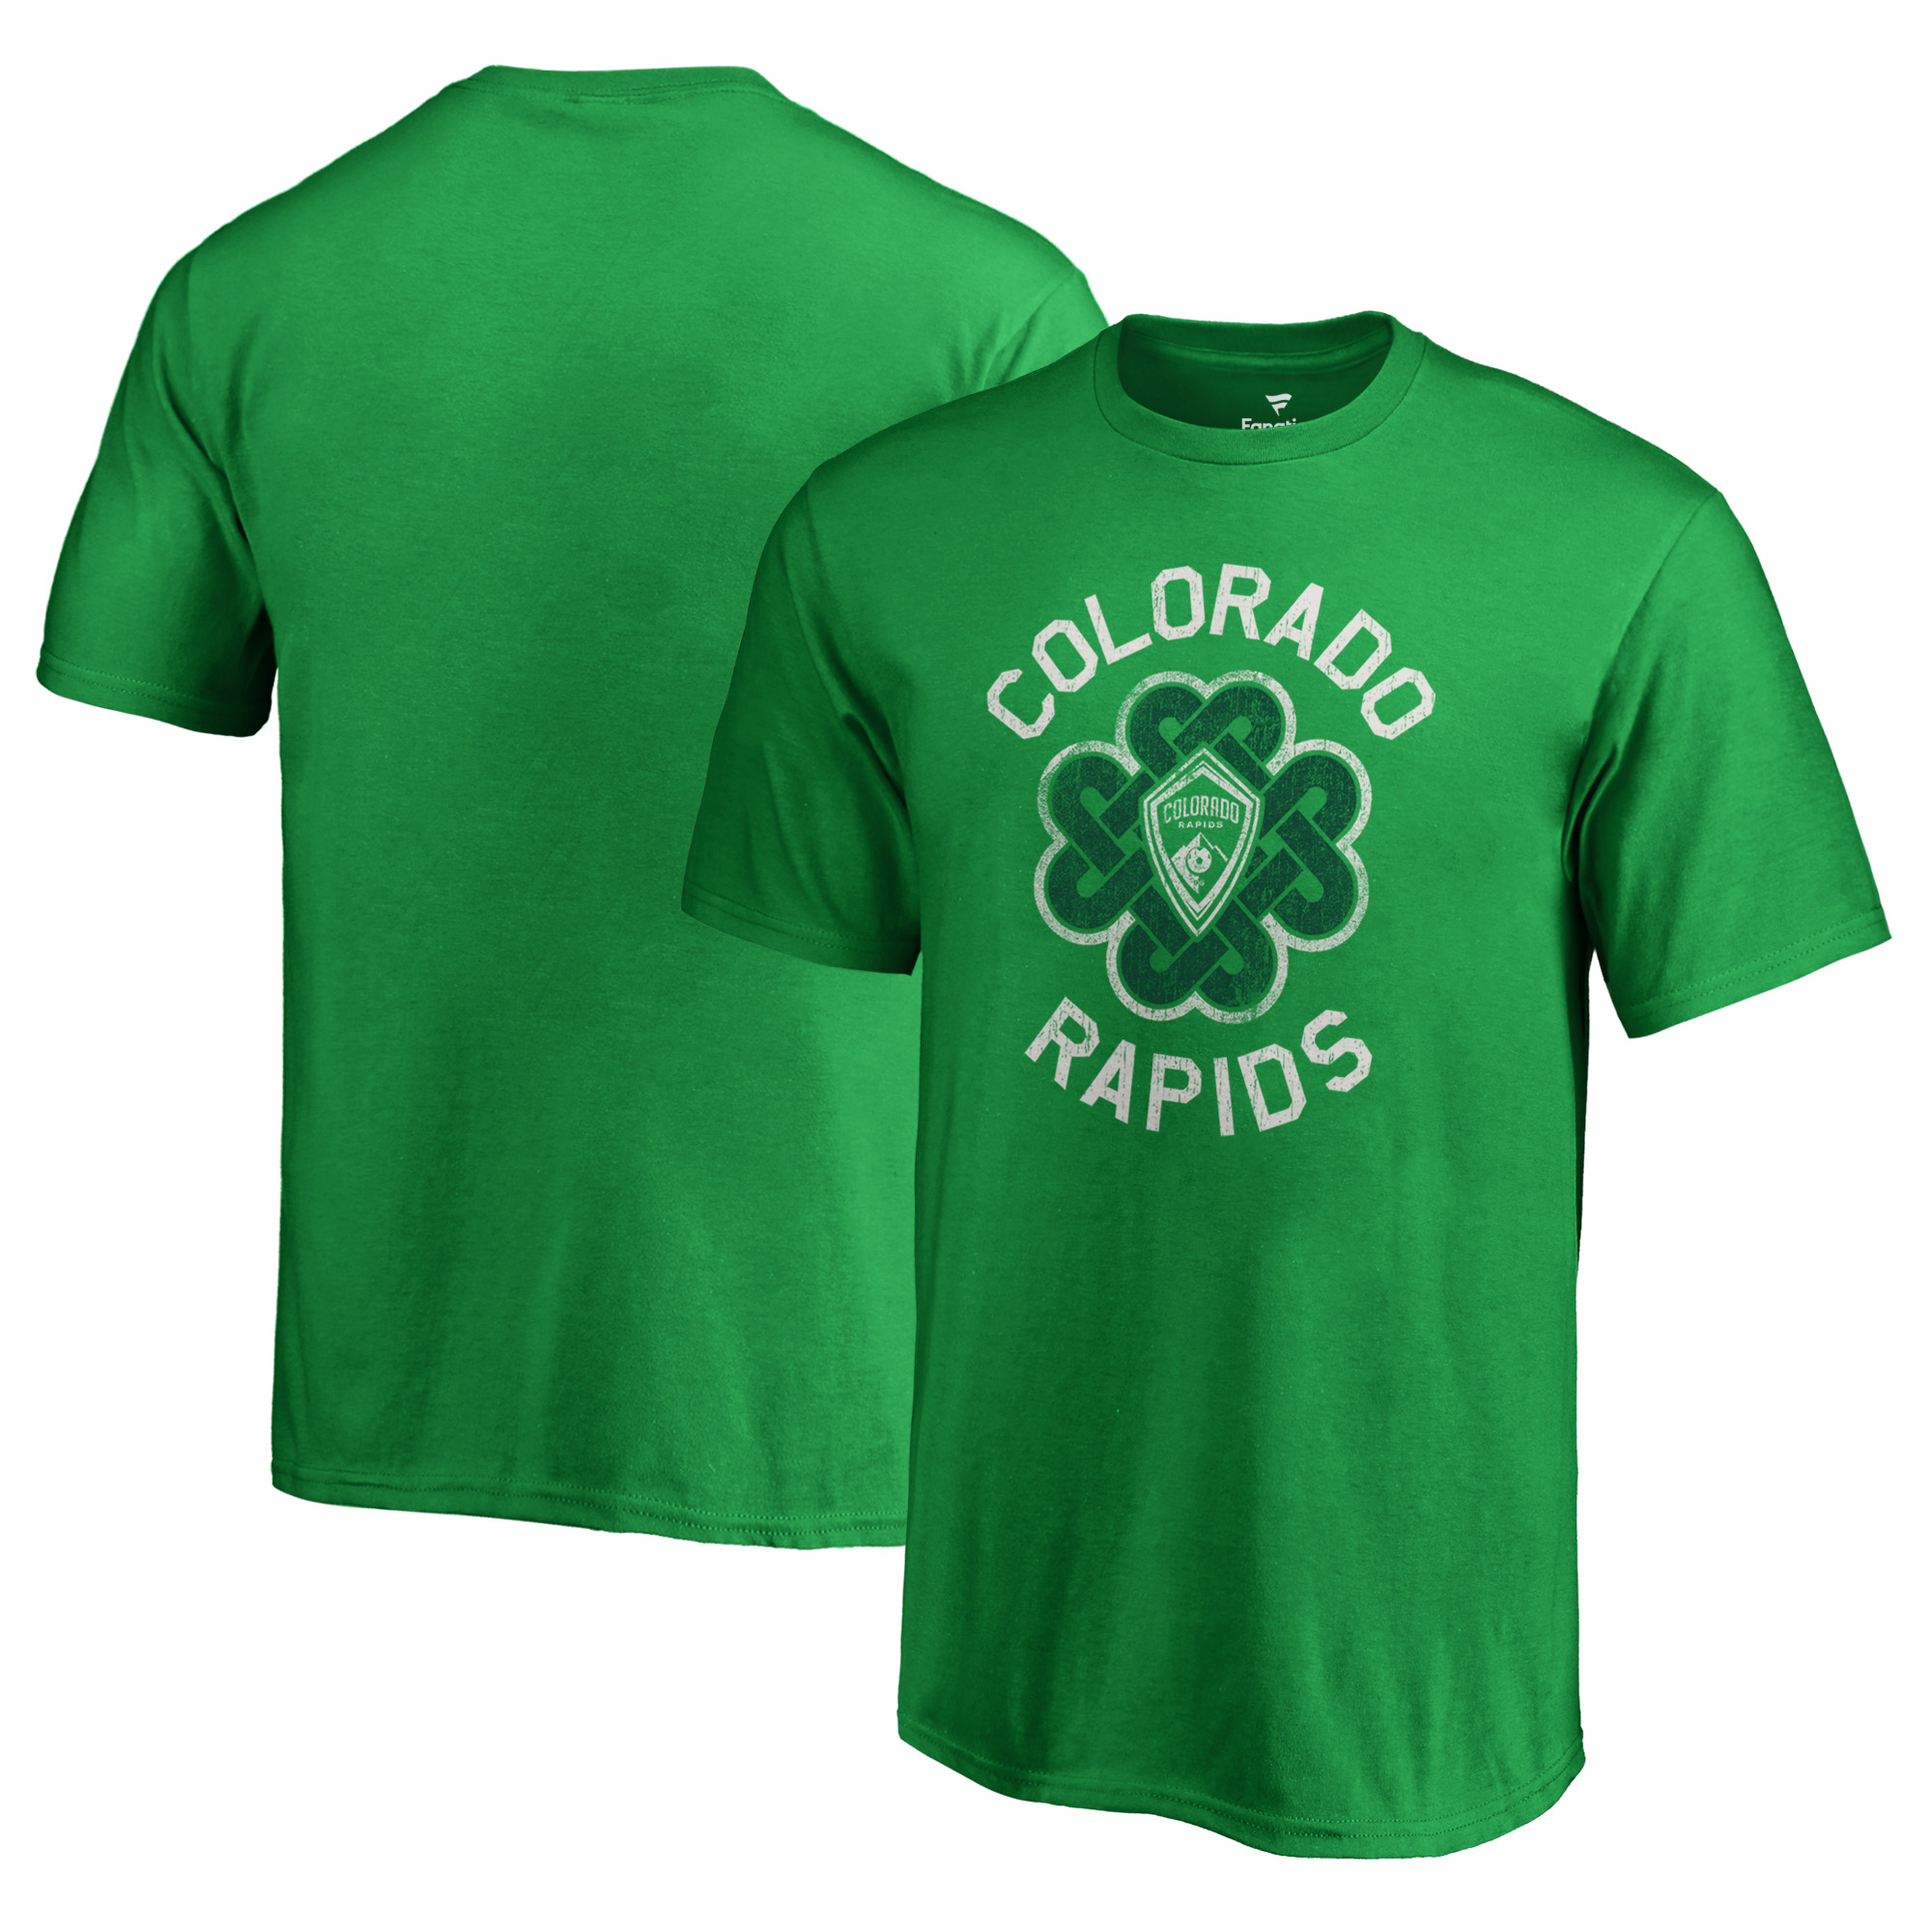 Colorado Rapids Fanatics Branded Youth St. Patrick's Day Luck Tradition T-Shirt - Kelly Green